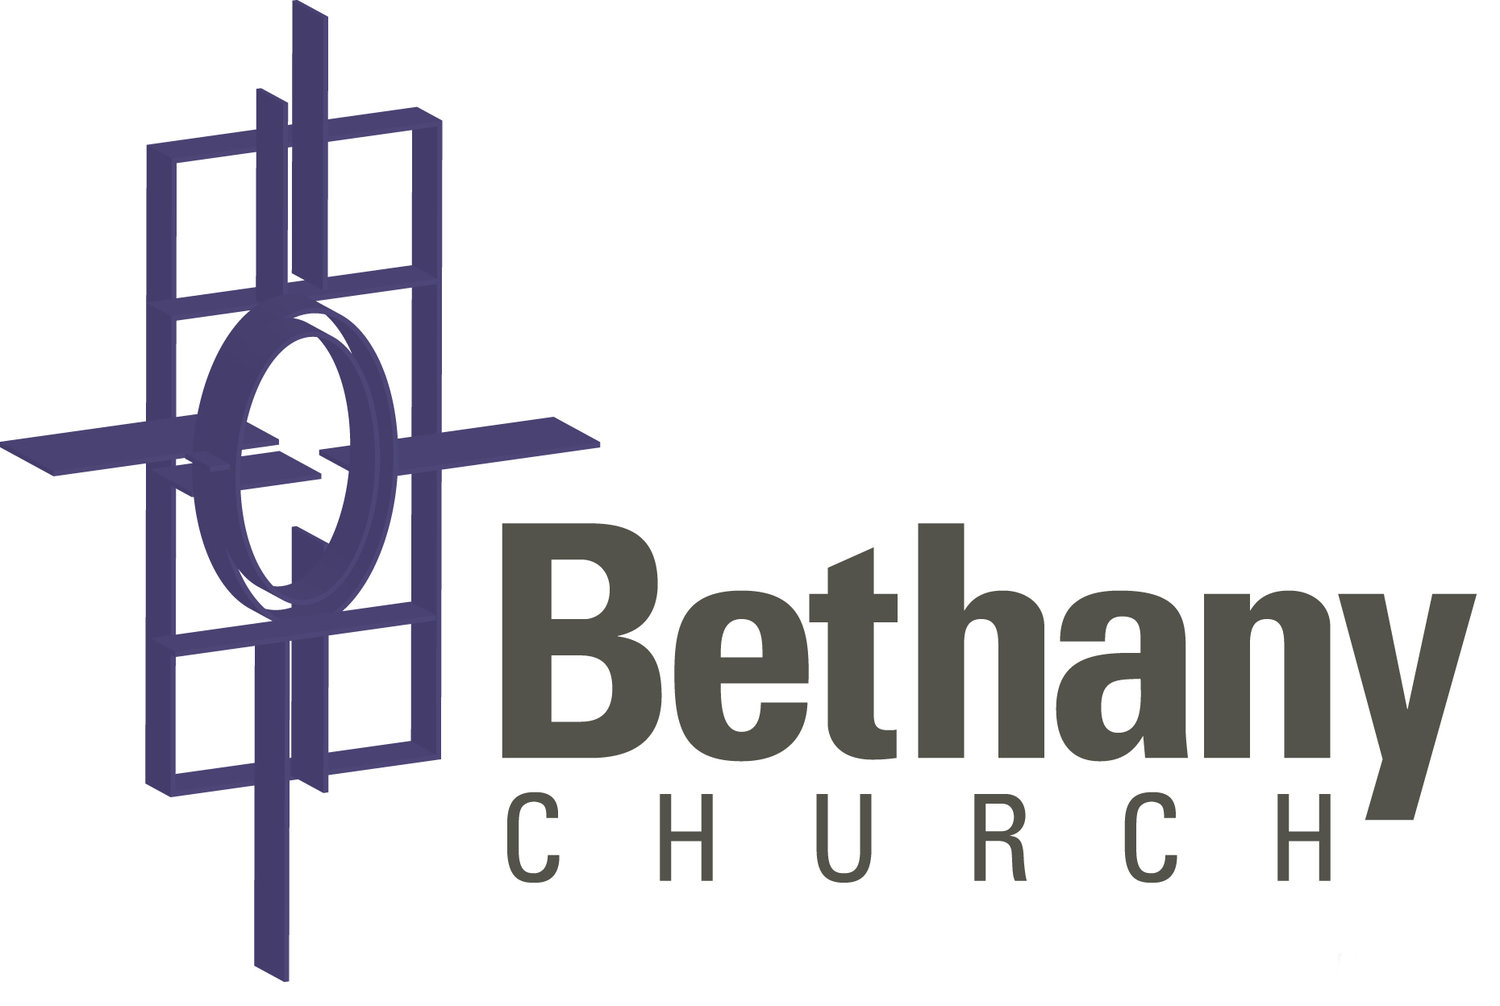 Bethany Church Muskegon